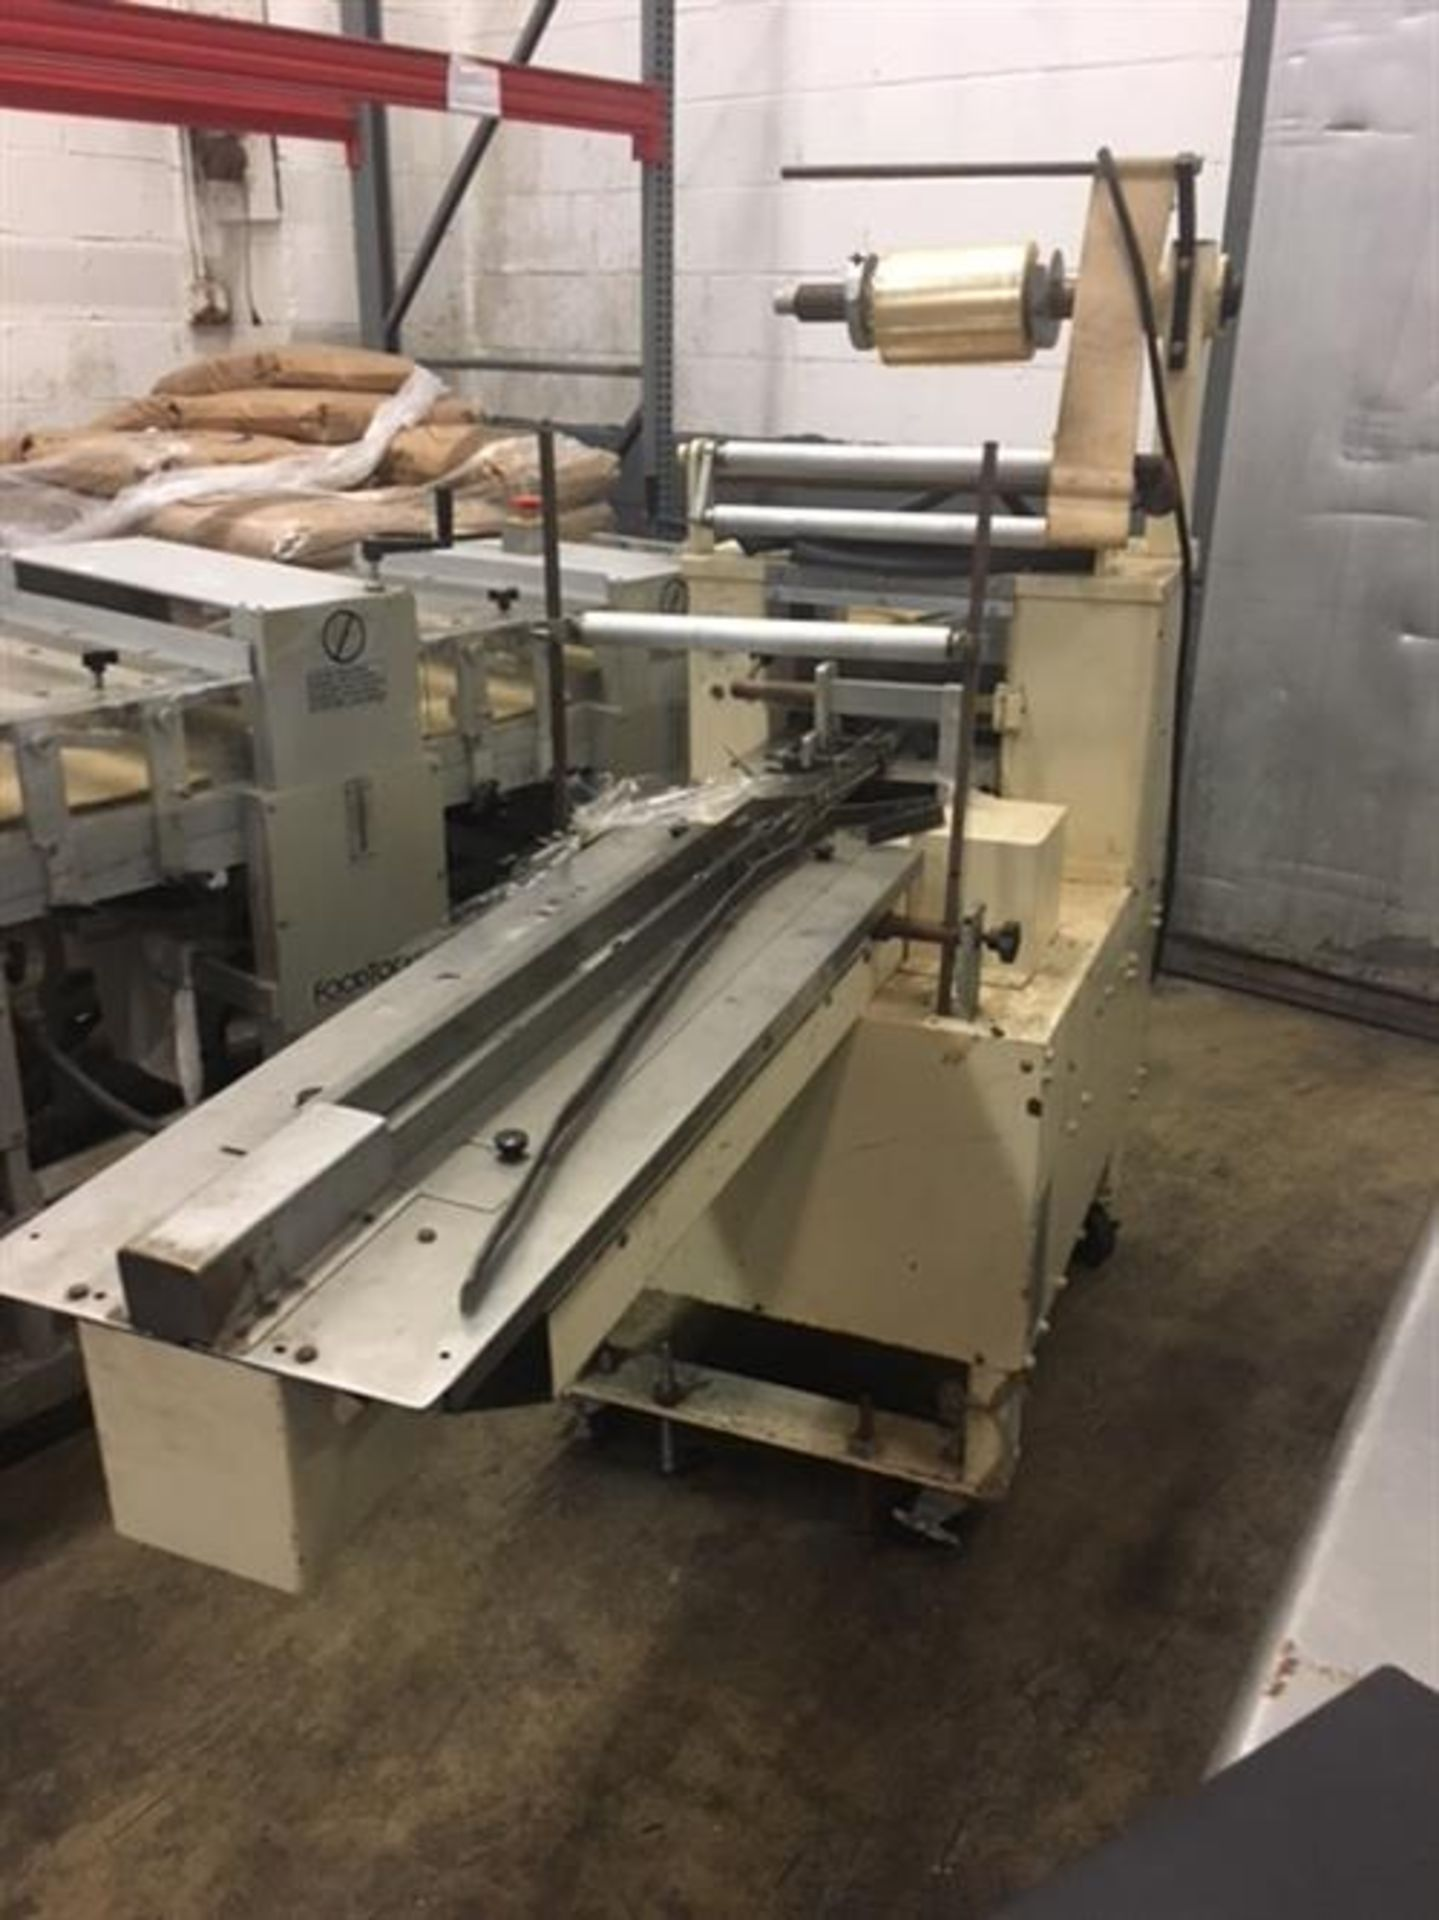 Doboy Scotty Horizontal Flow Wrapper - No electric eye (clear or continuous print cellophane film) - - Image 3 of 8